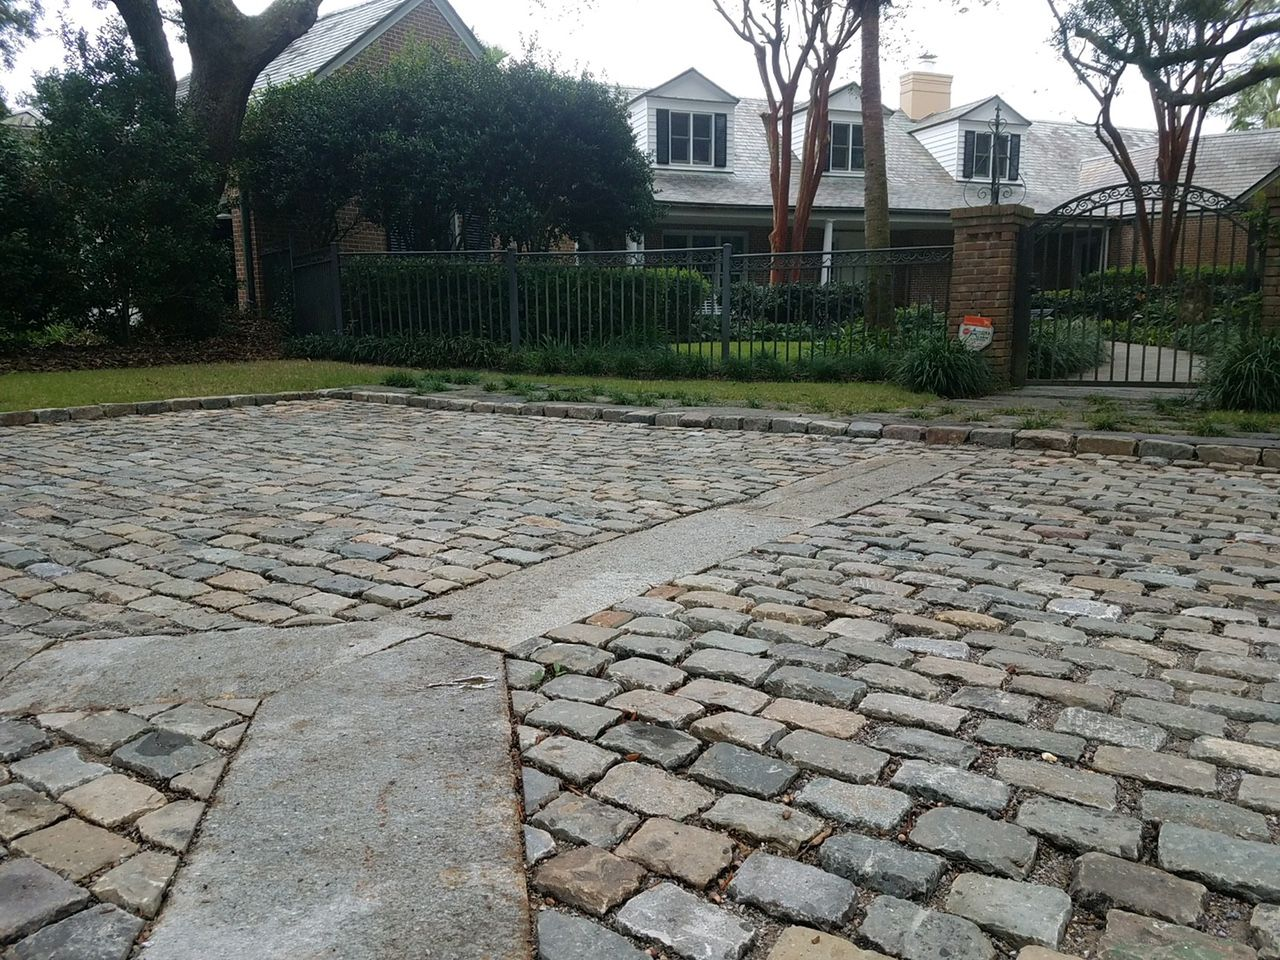 Reclaimed Cobblestones Are A Highlight In This Driveway